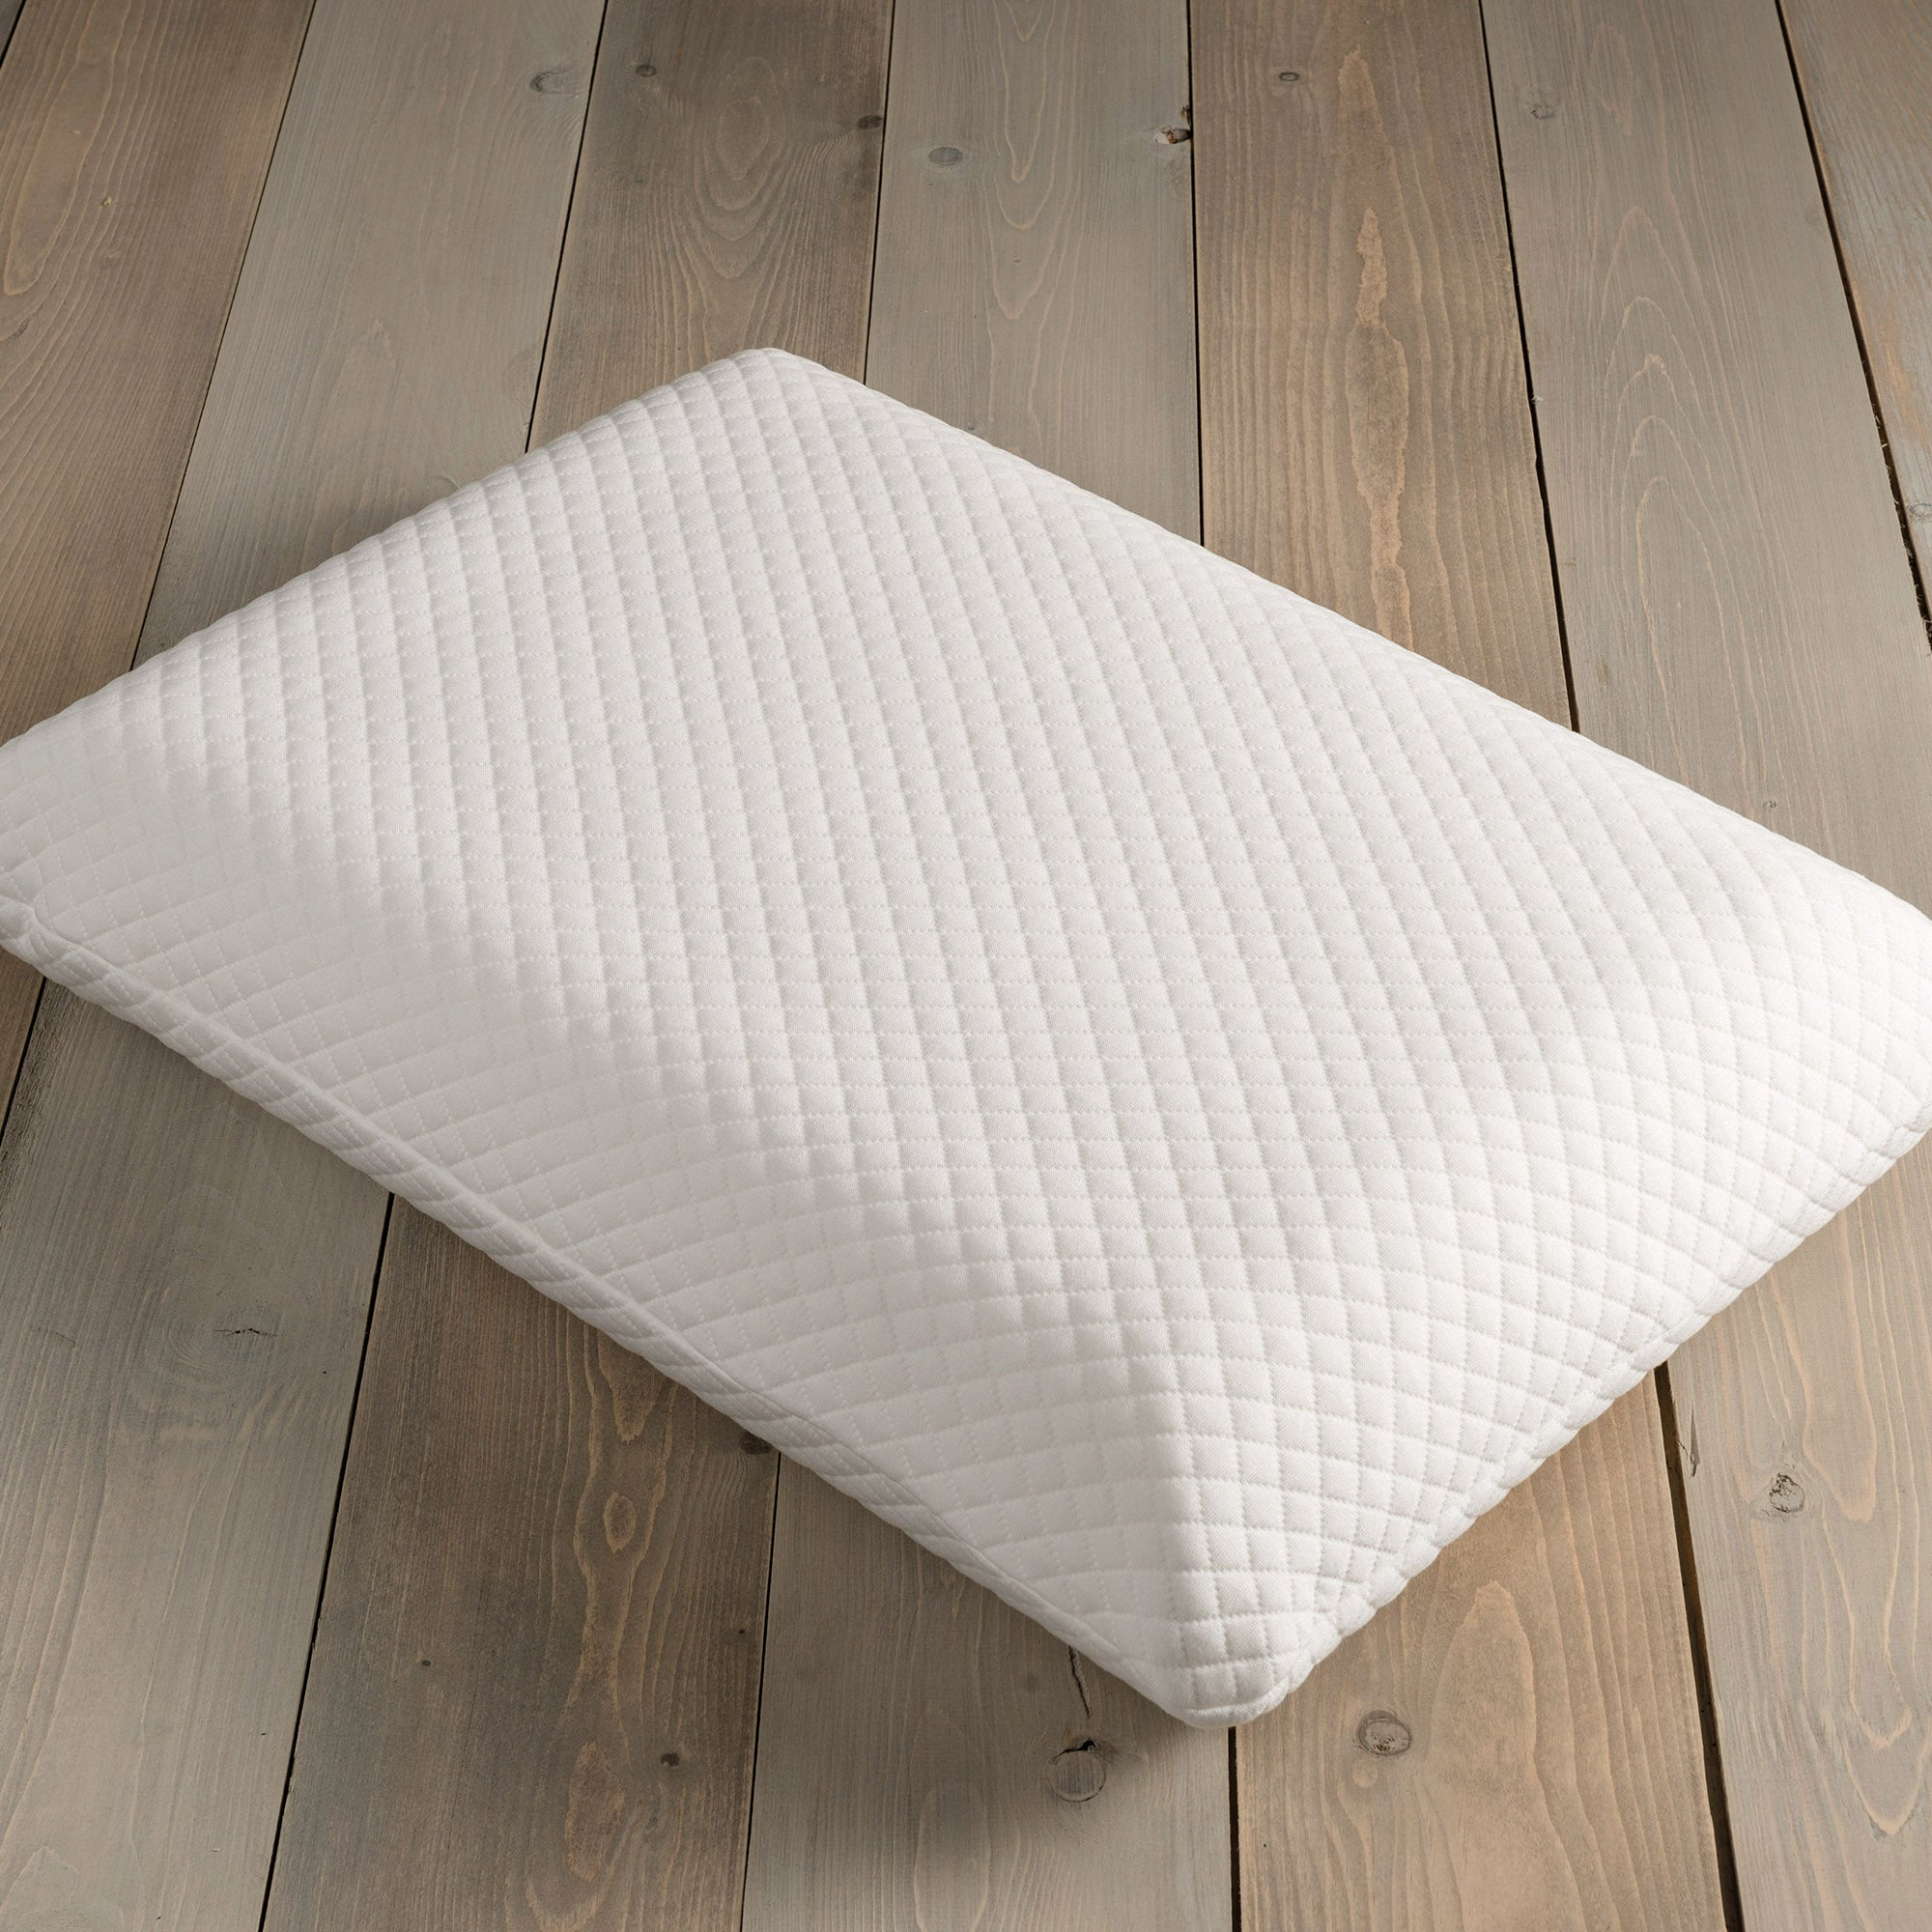 Image of Comfortzone 3D Memory Foam Firm-Support Pillow White